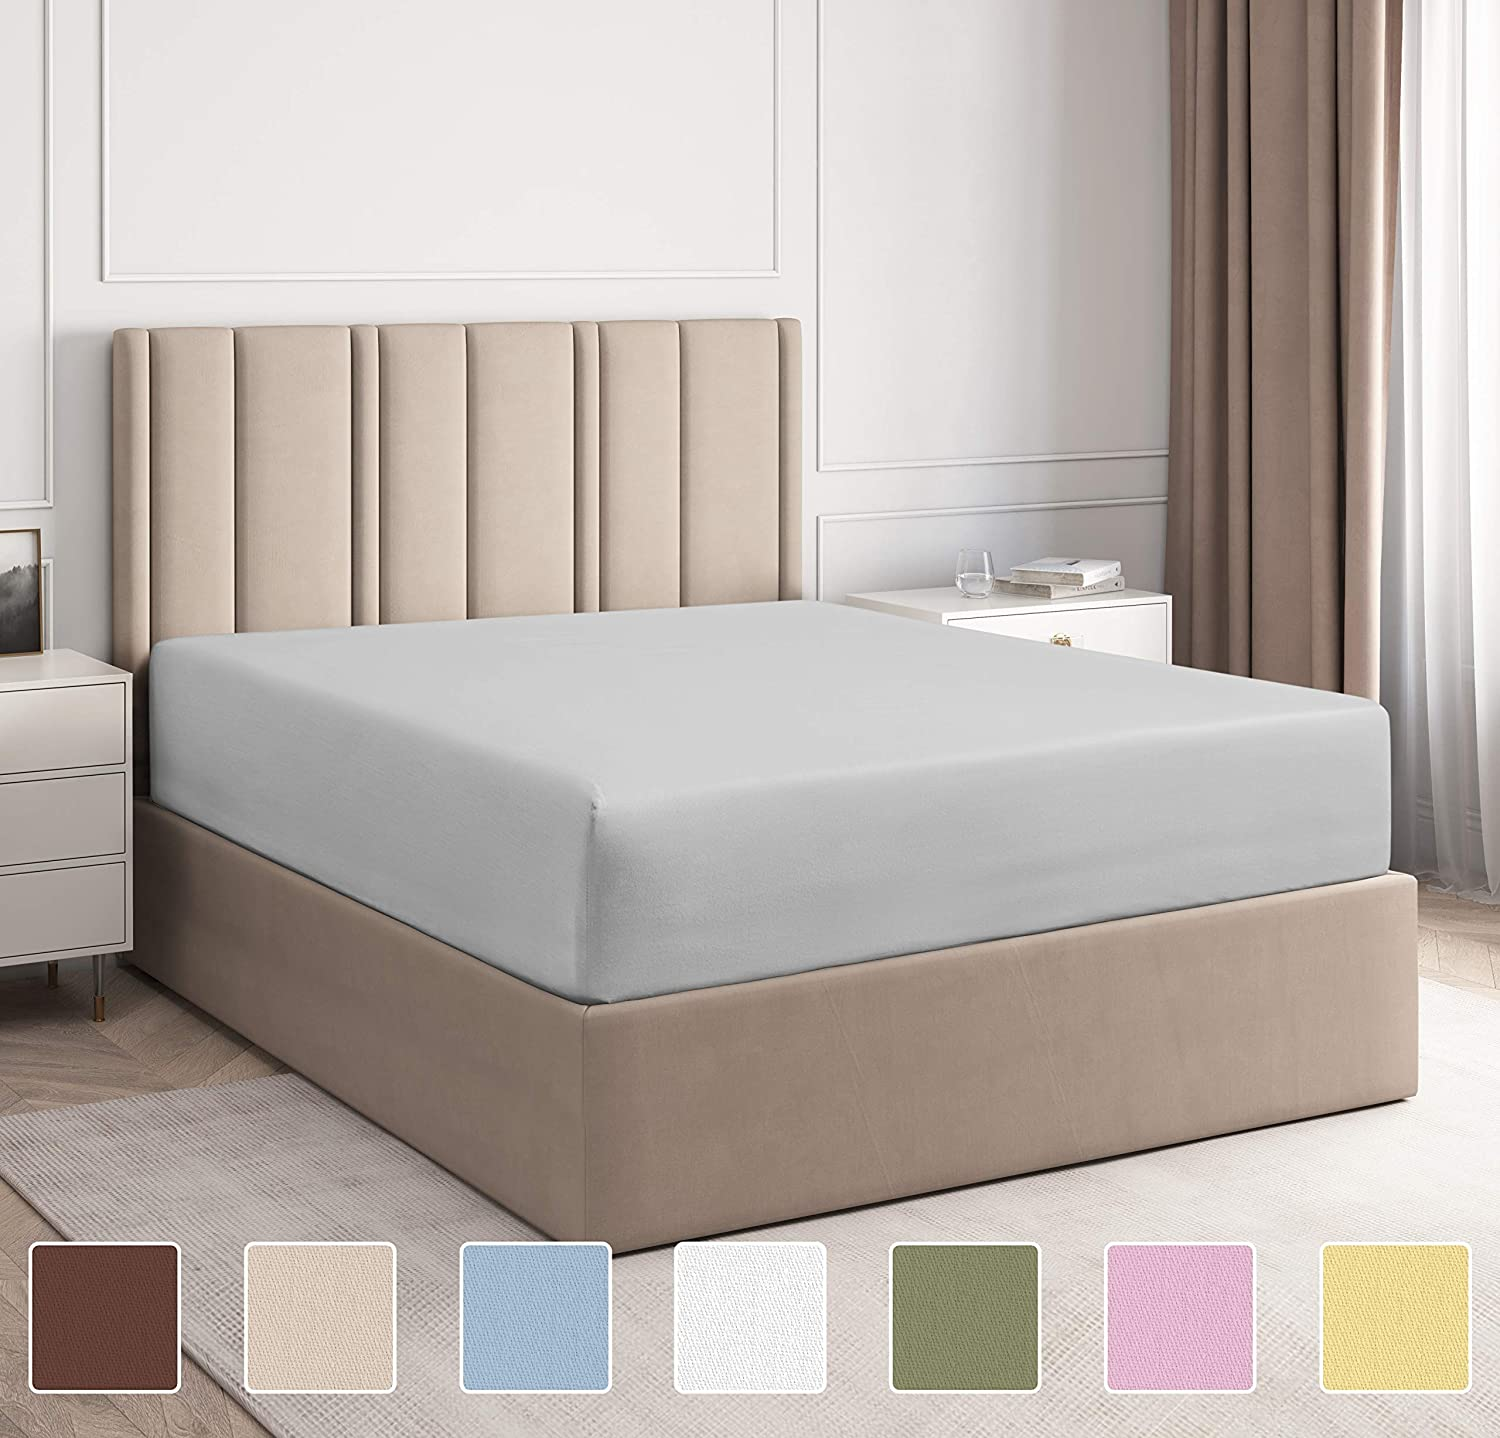 Full Size Fitted Sheet - Single Fitted Sheet Full - Fitted Sheet Only - Fitted Sheet Deep Pocket - Fitted Sheet for Full Mattress - Softer Than Egyptian Cotton - 1 Fitted Full Sheet Only - Fitted Full